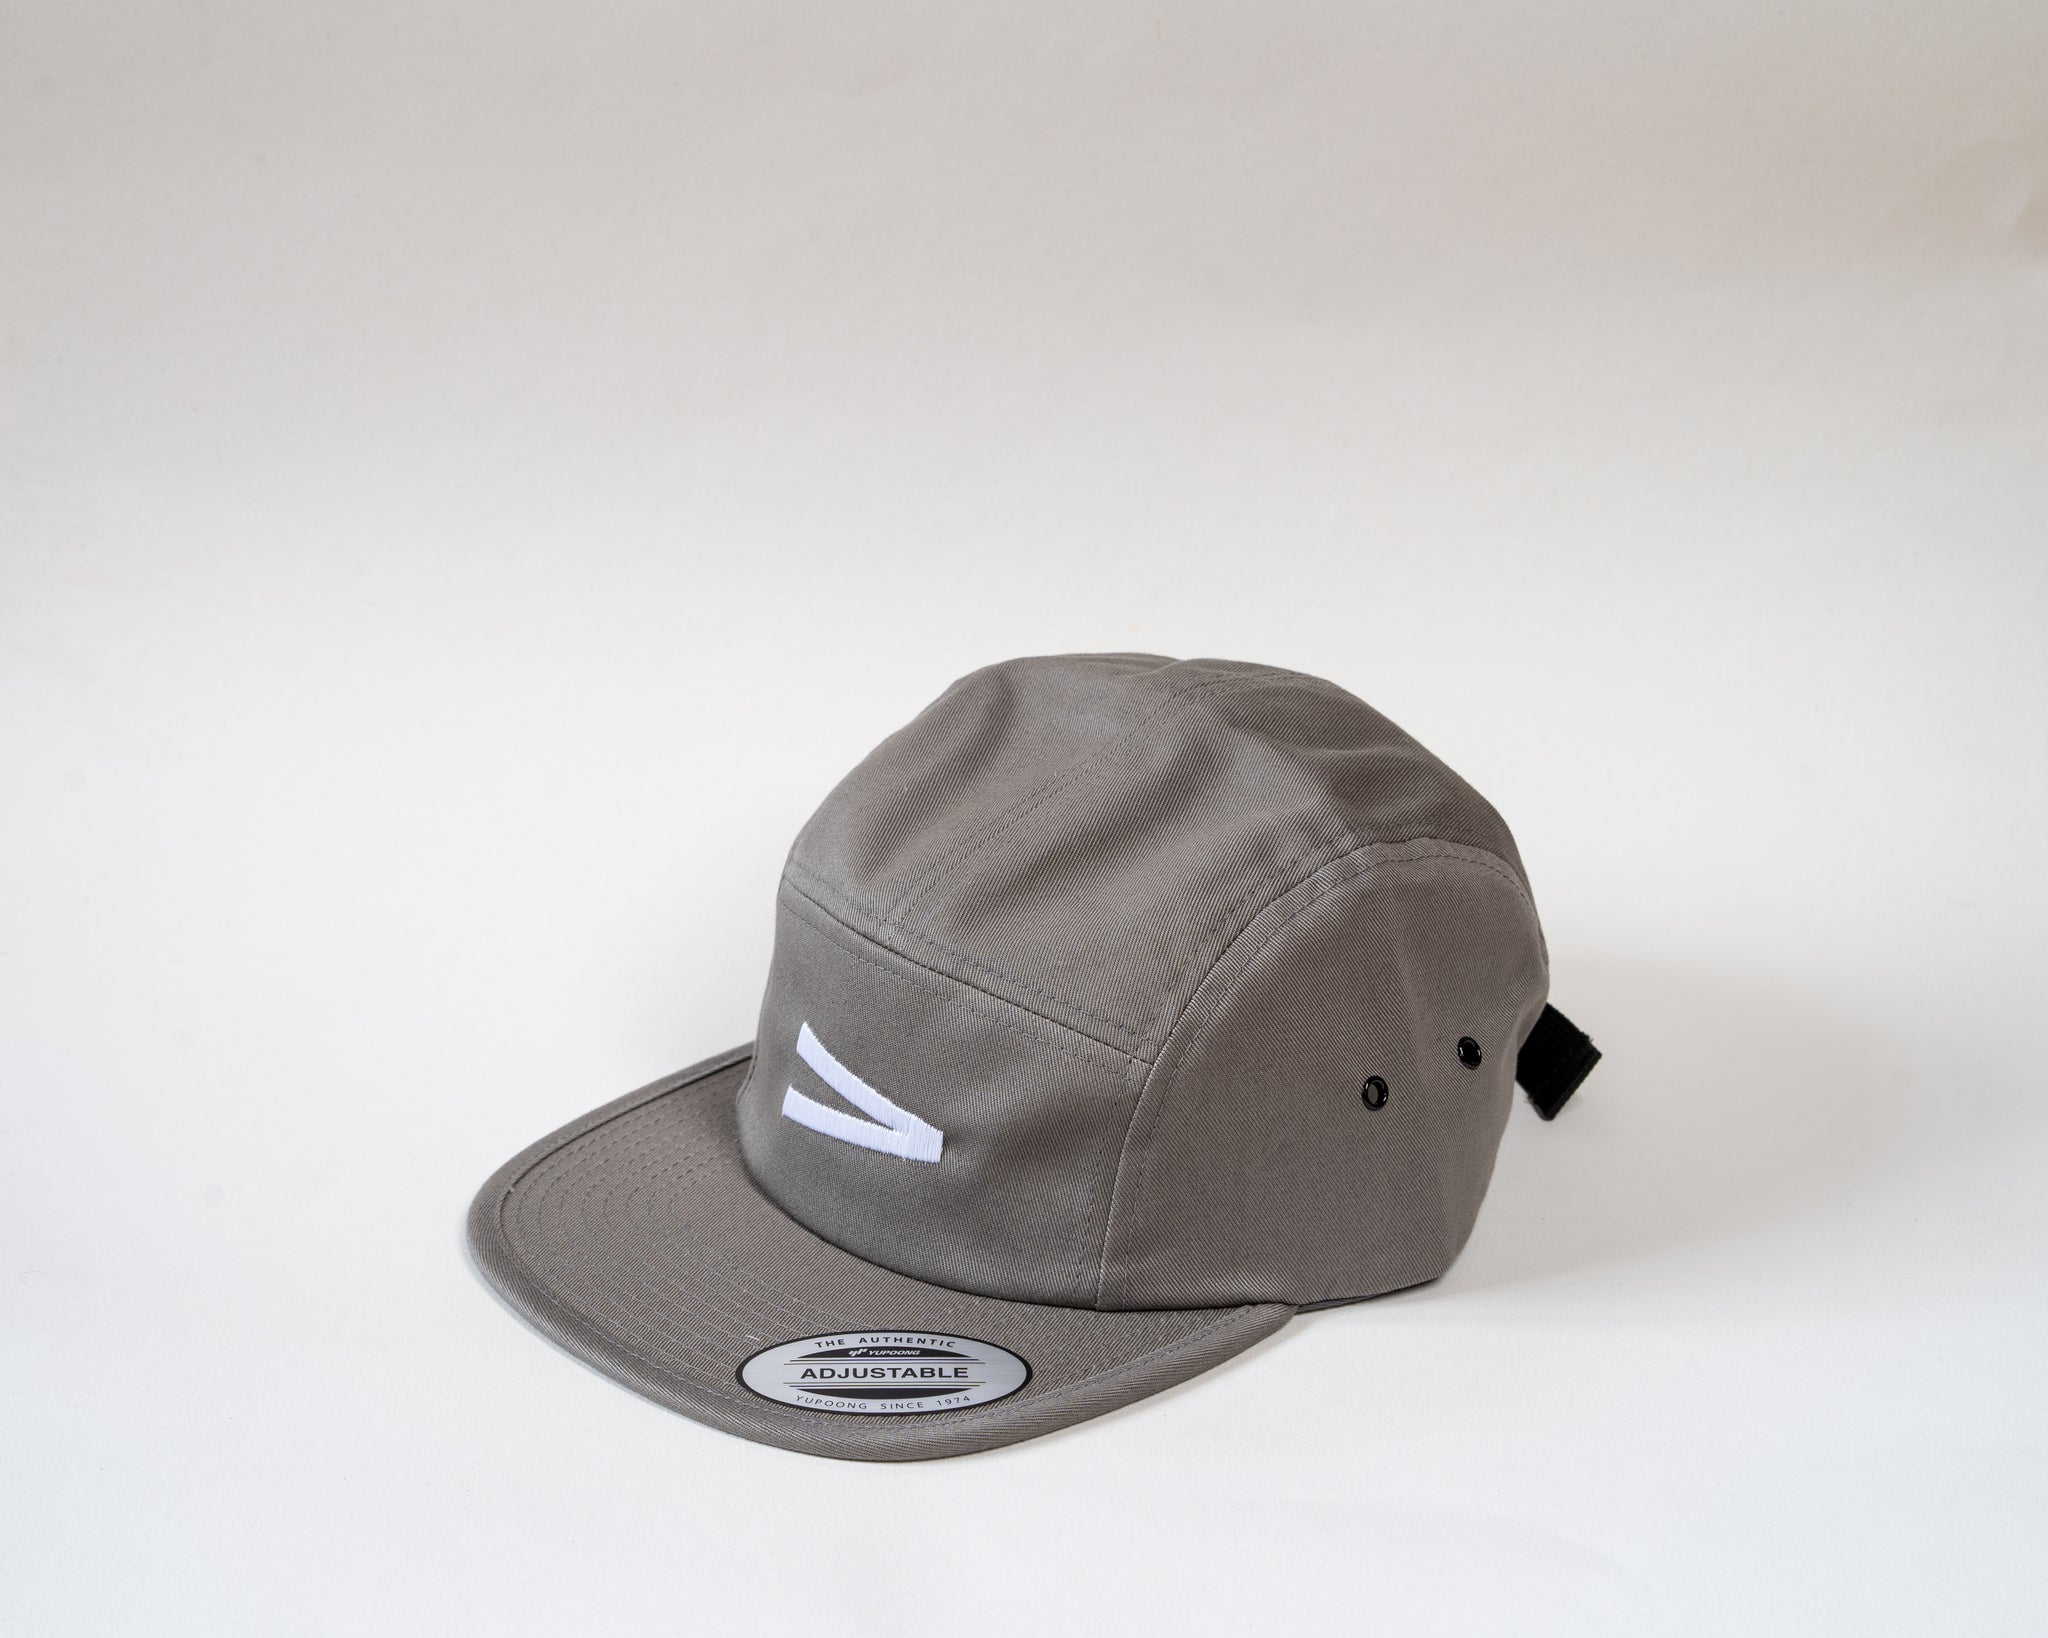 Grey 5 panel cap showcasing Jam logo A symbol on a white background